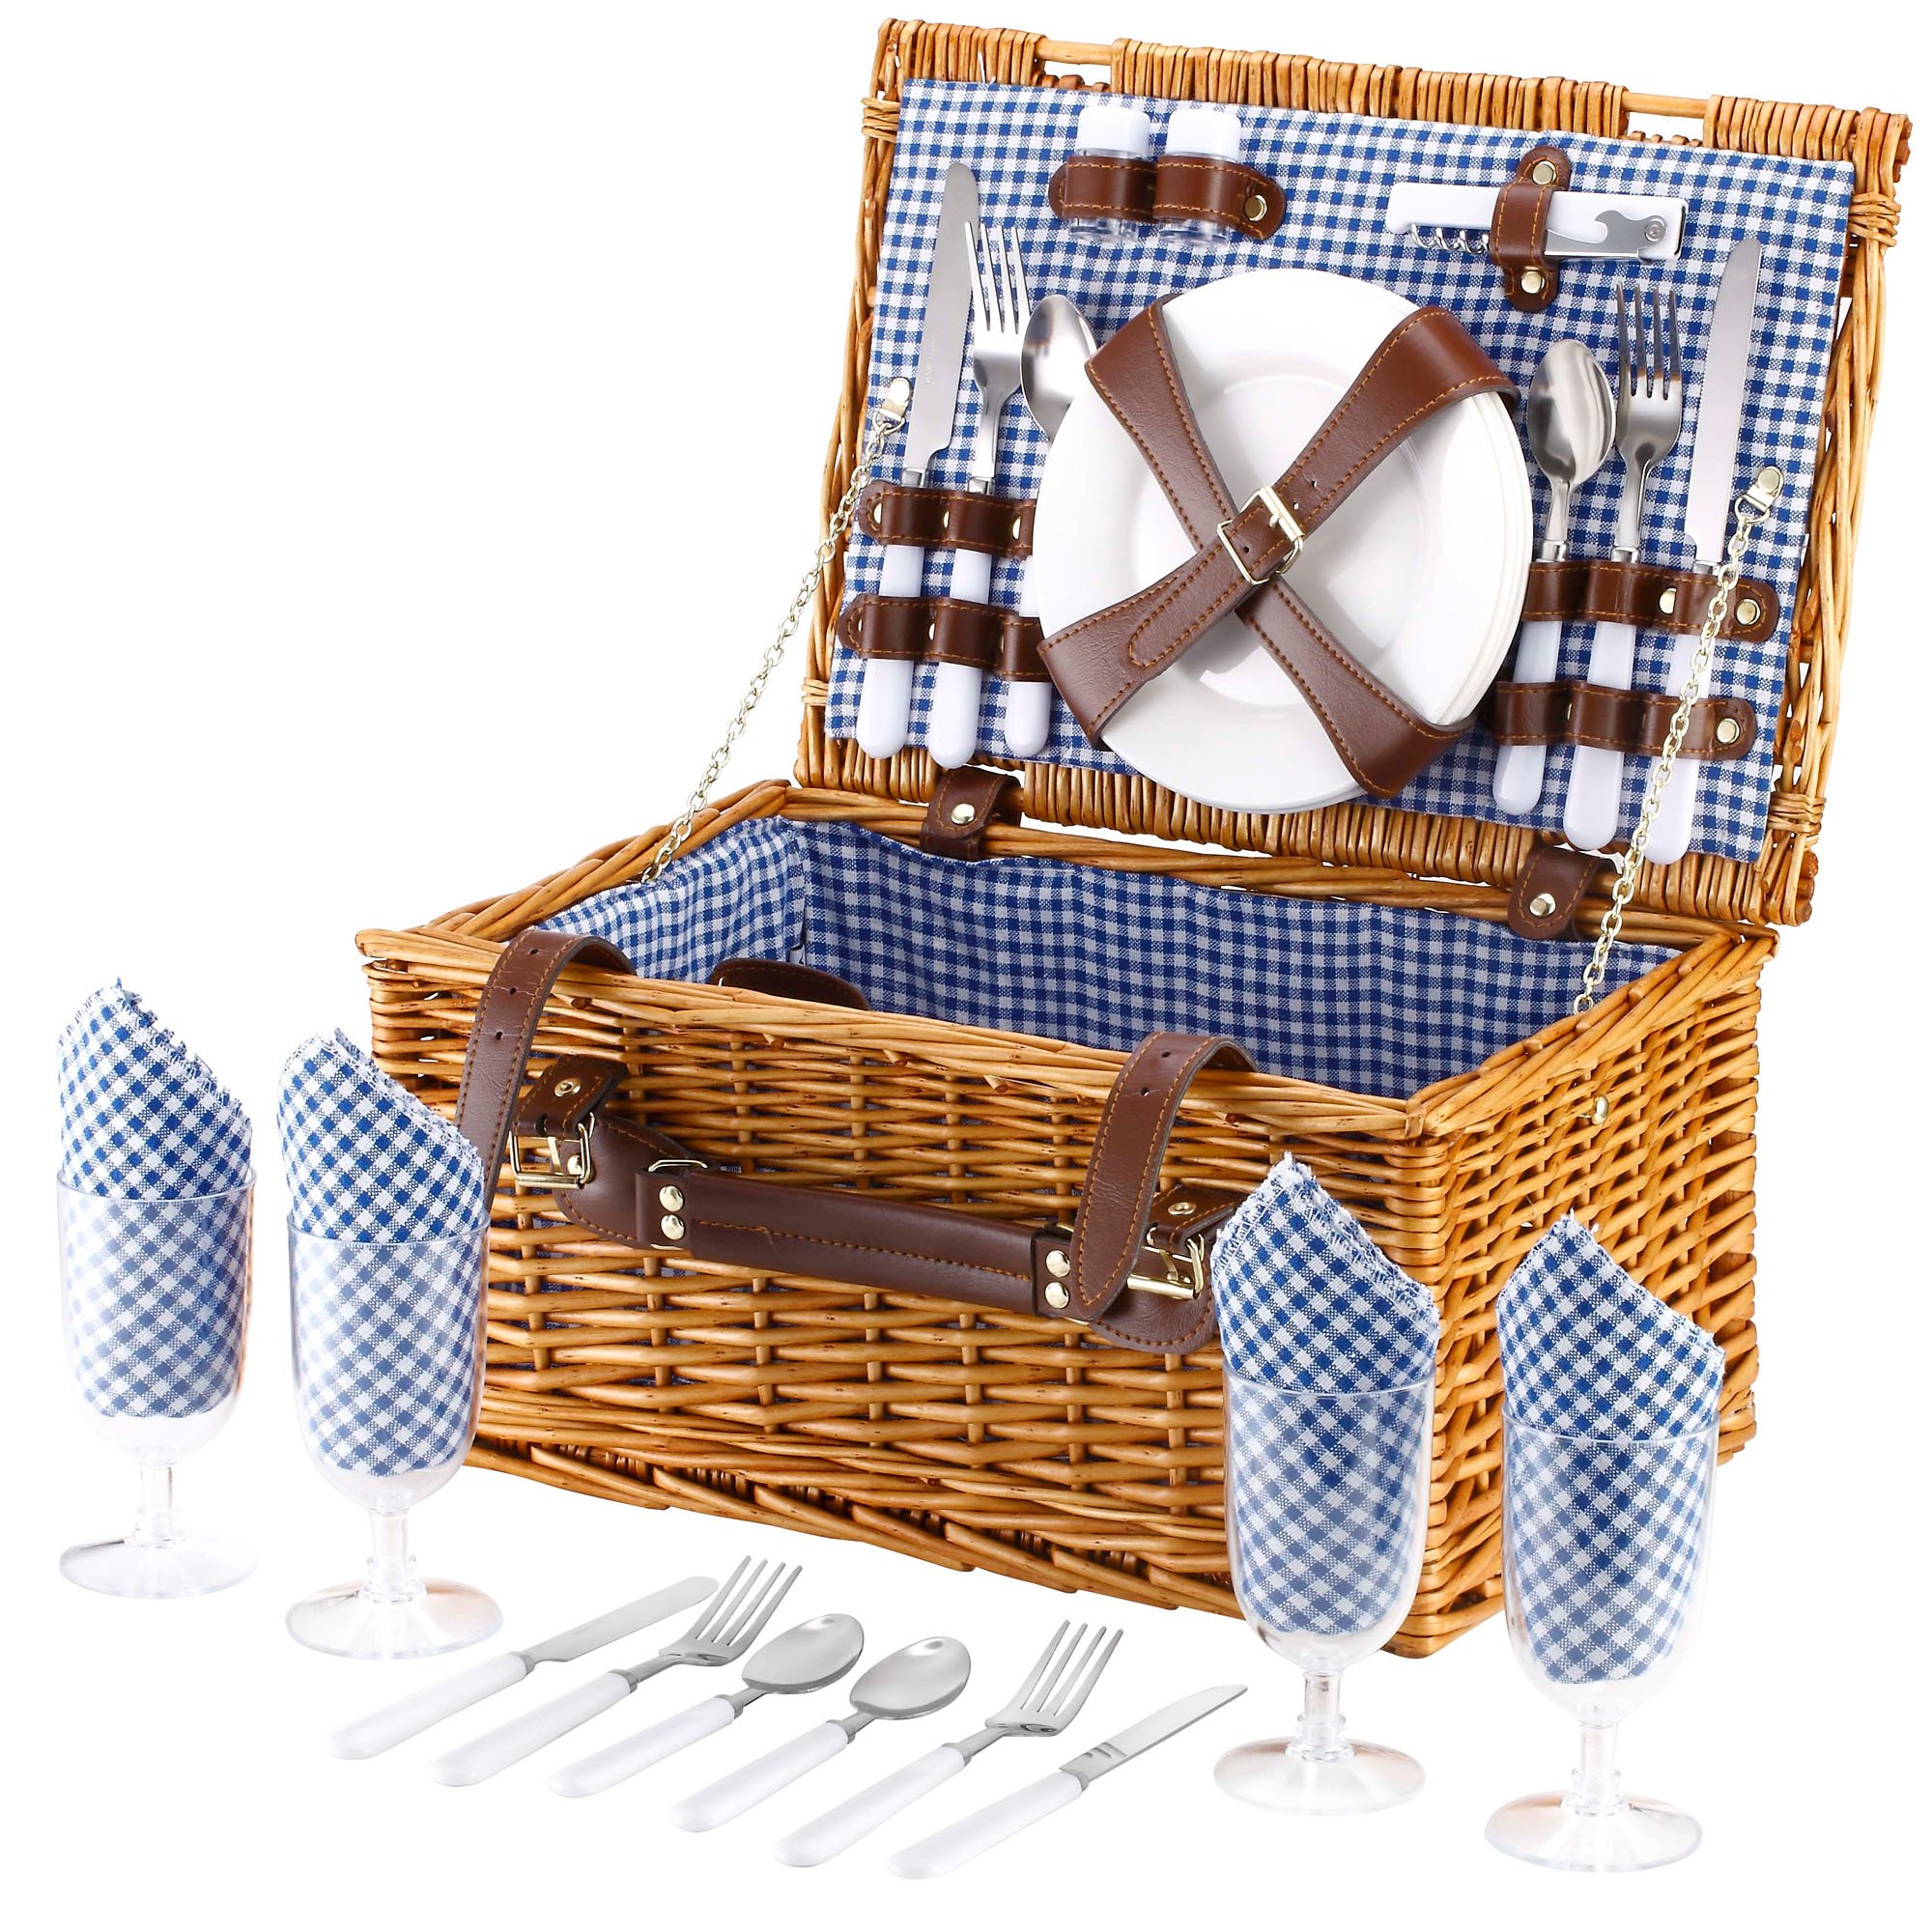 Picnic basket hamper set : Vonshef person wicker picnic basket hamper set with